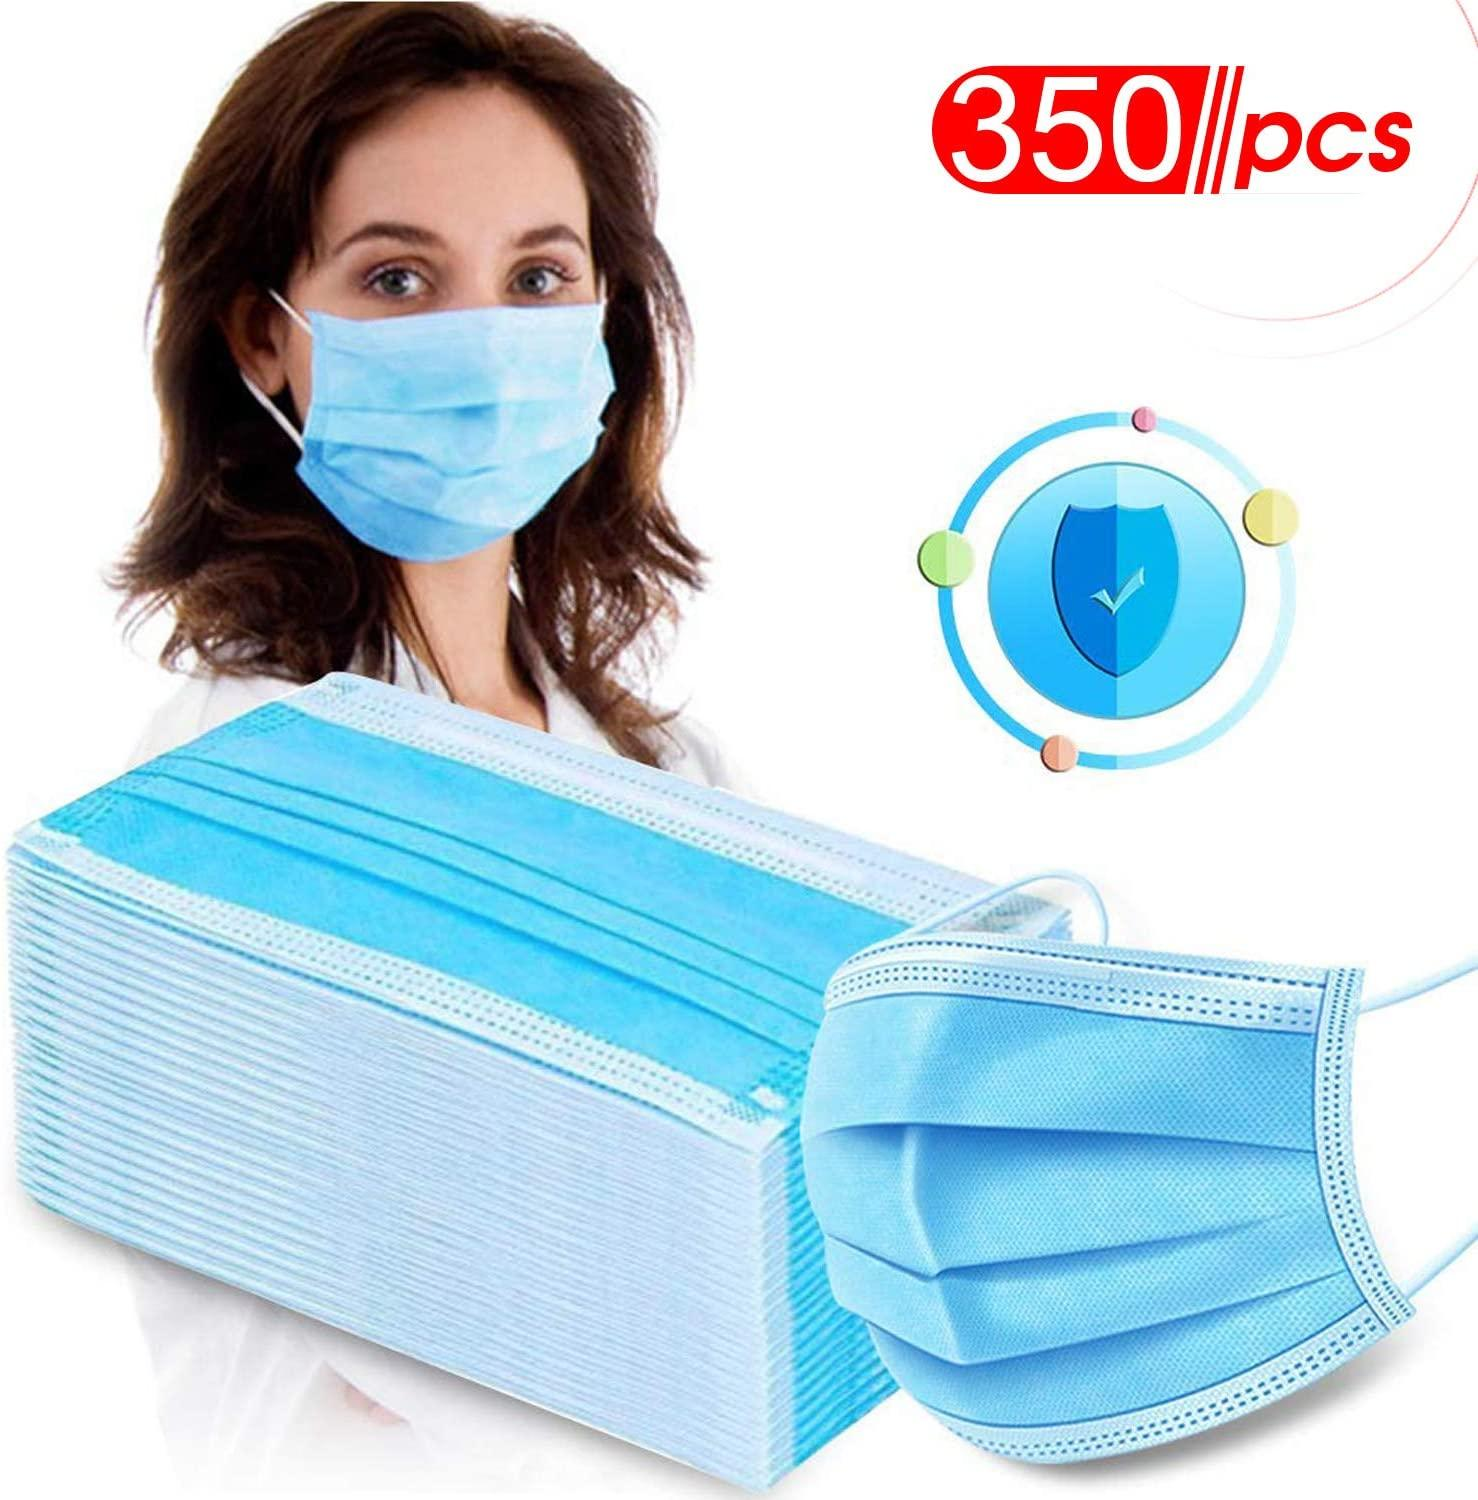 300 Pcs Spot 3 Laye Mask Dust Protection Mouth Mask Disposable Face Mask Elastic Ear Loop Dust Filter Safety Masks